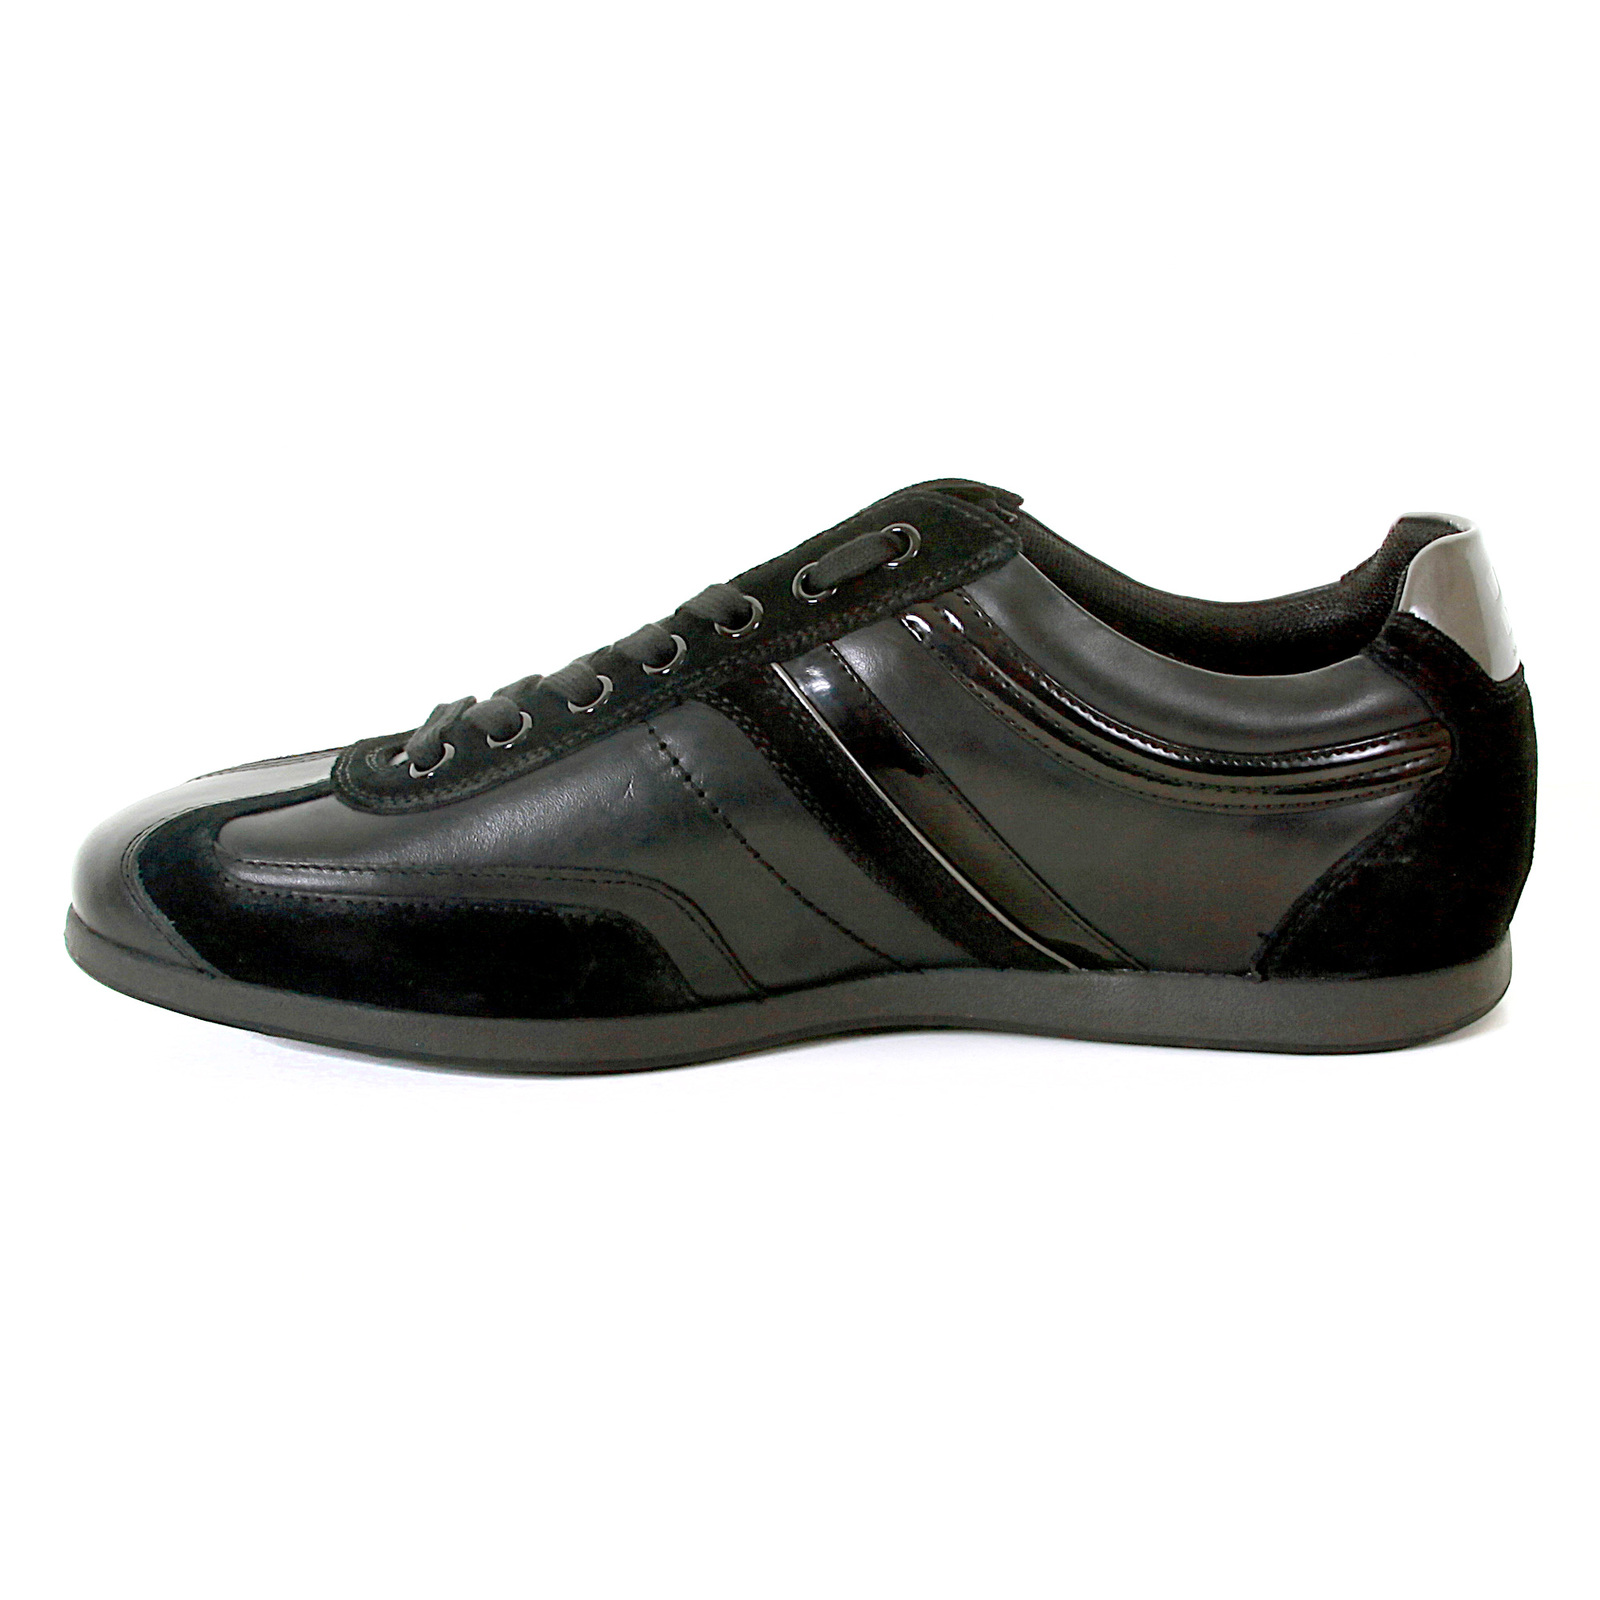 Hugo Boss Leather Shoes Price